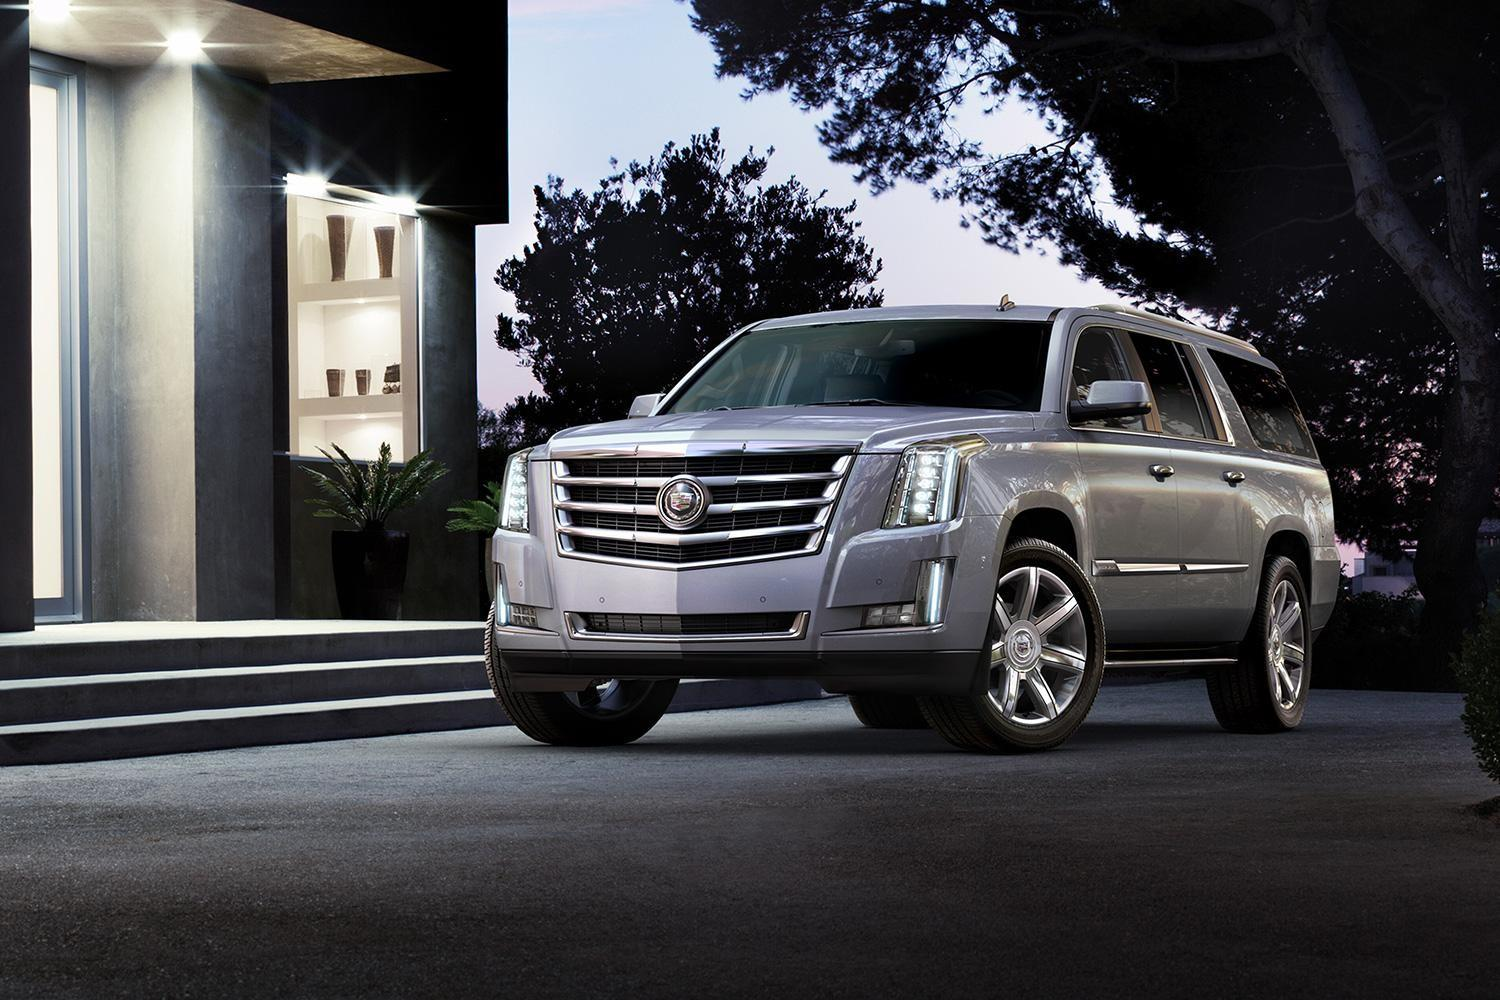 Cadillac 2015 escalade opening a new generation of luxury SUVs #6